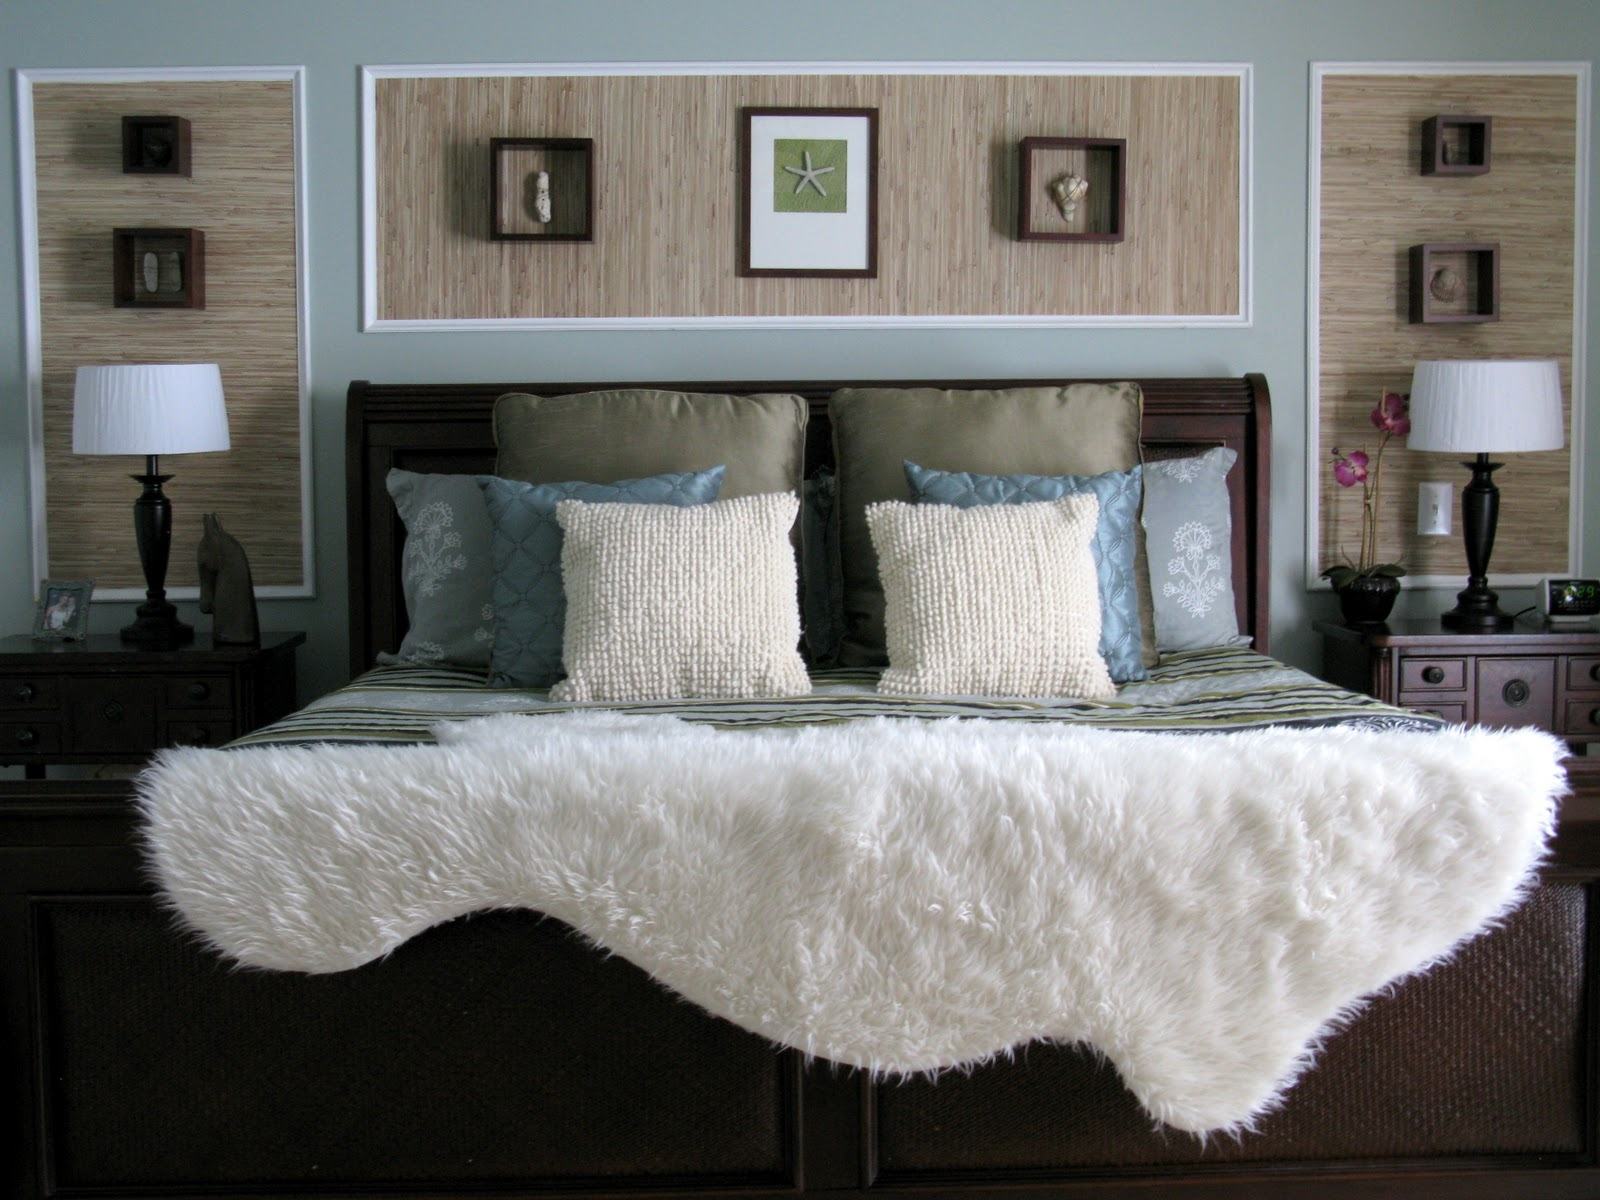 LoveYourRoom: Voted One of the Top Bedrooms by Houzz ...